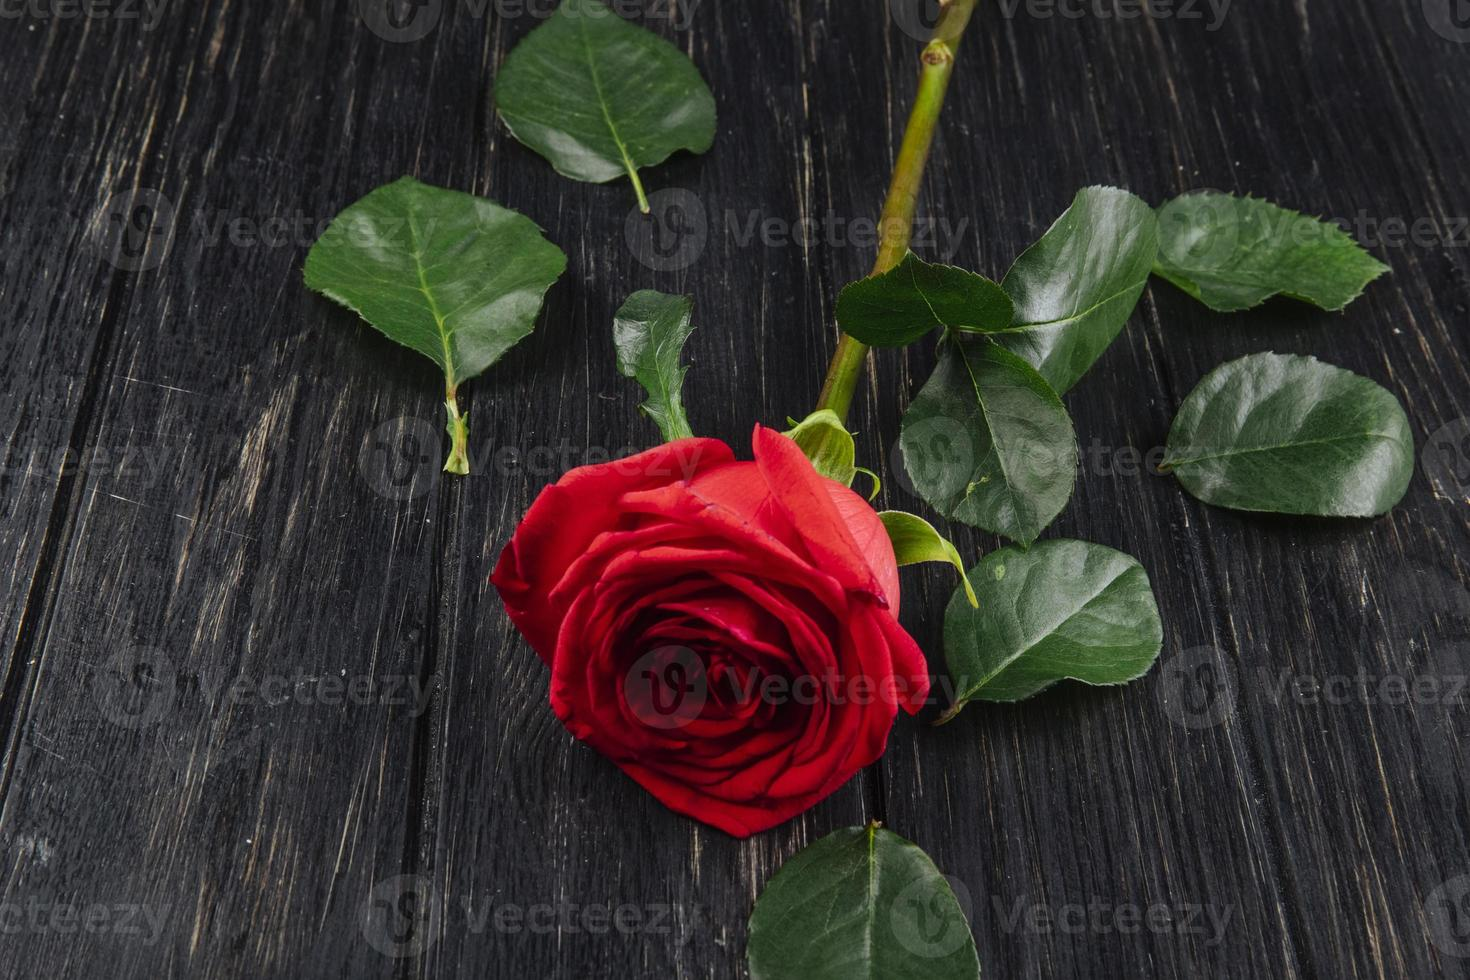 Red rose with green leaves on a dark wooden background photo